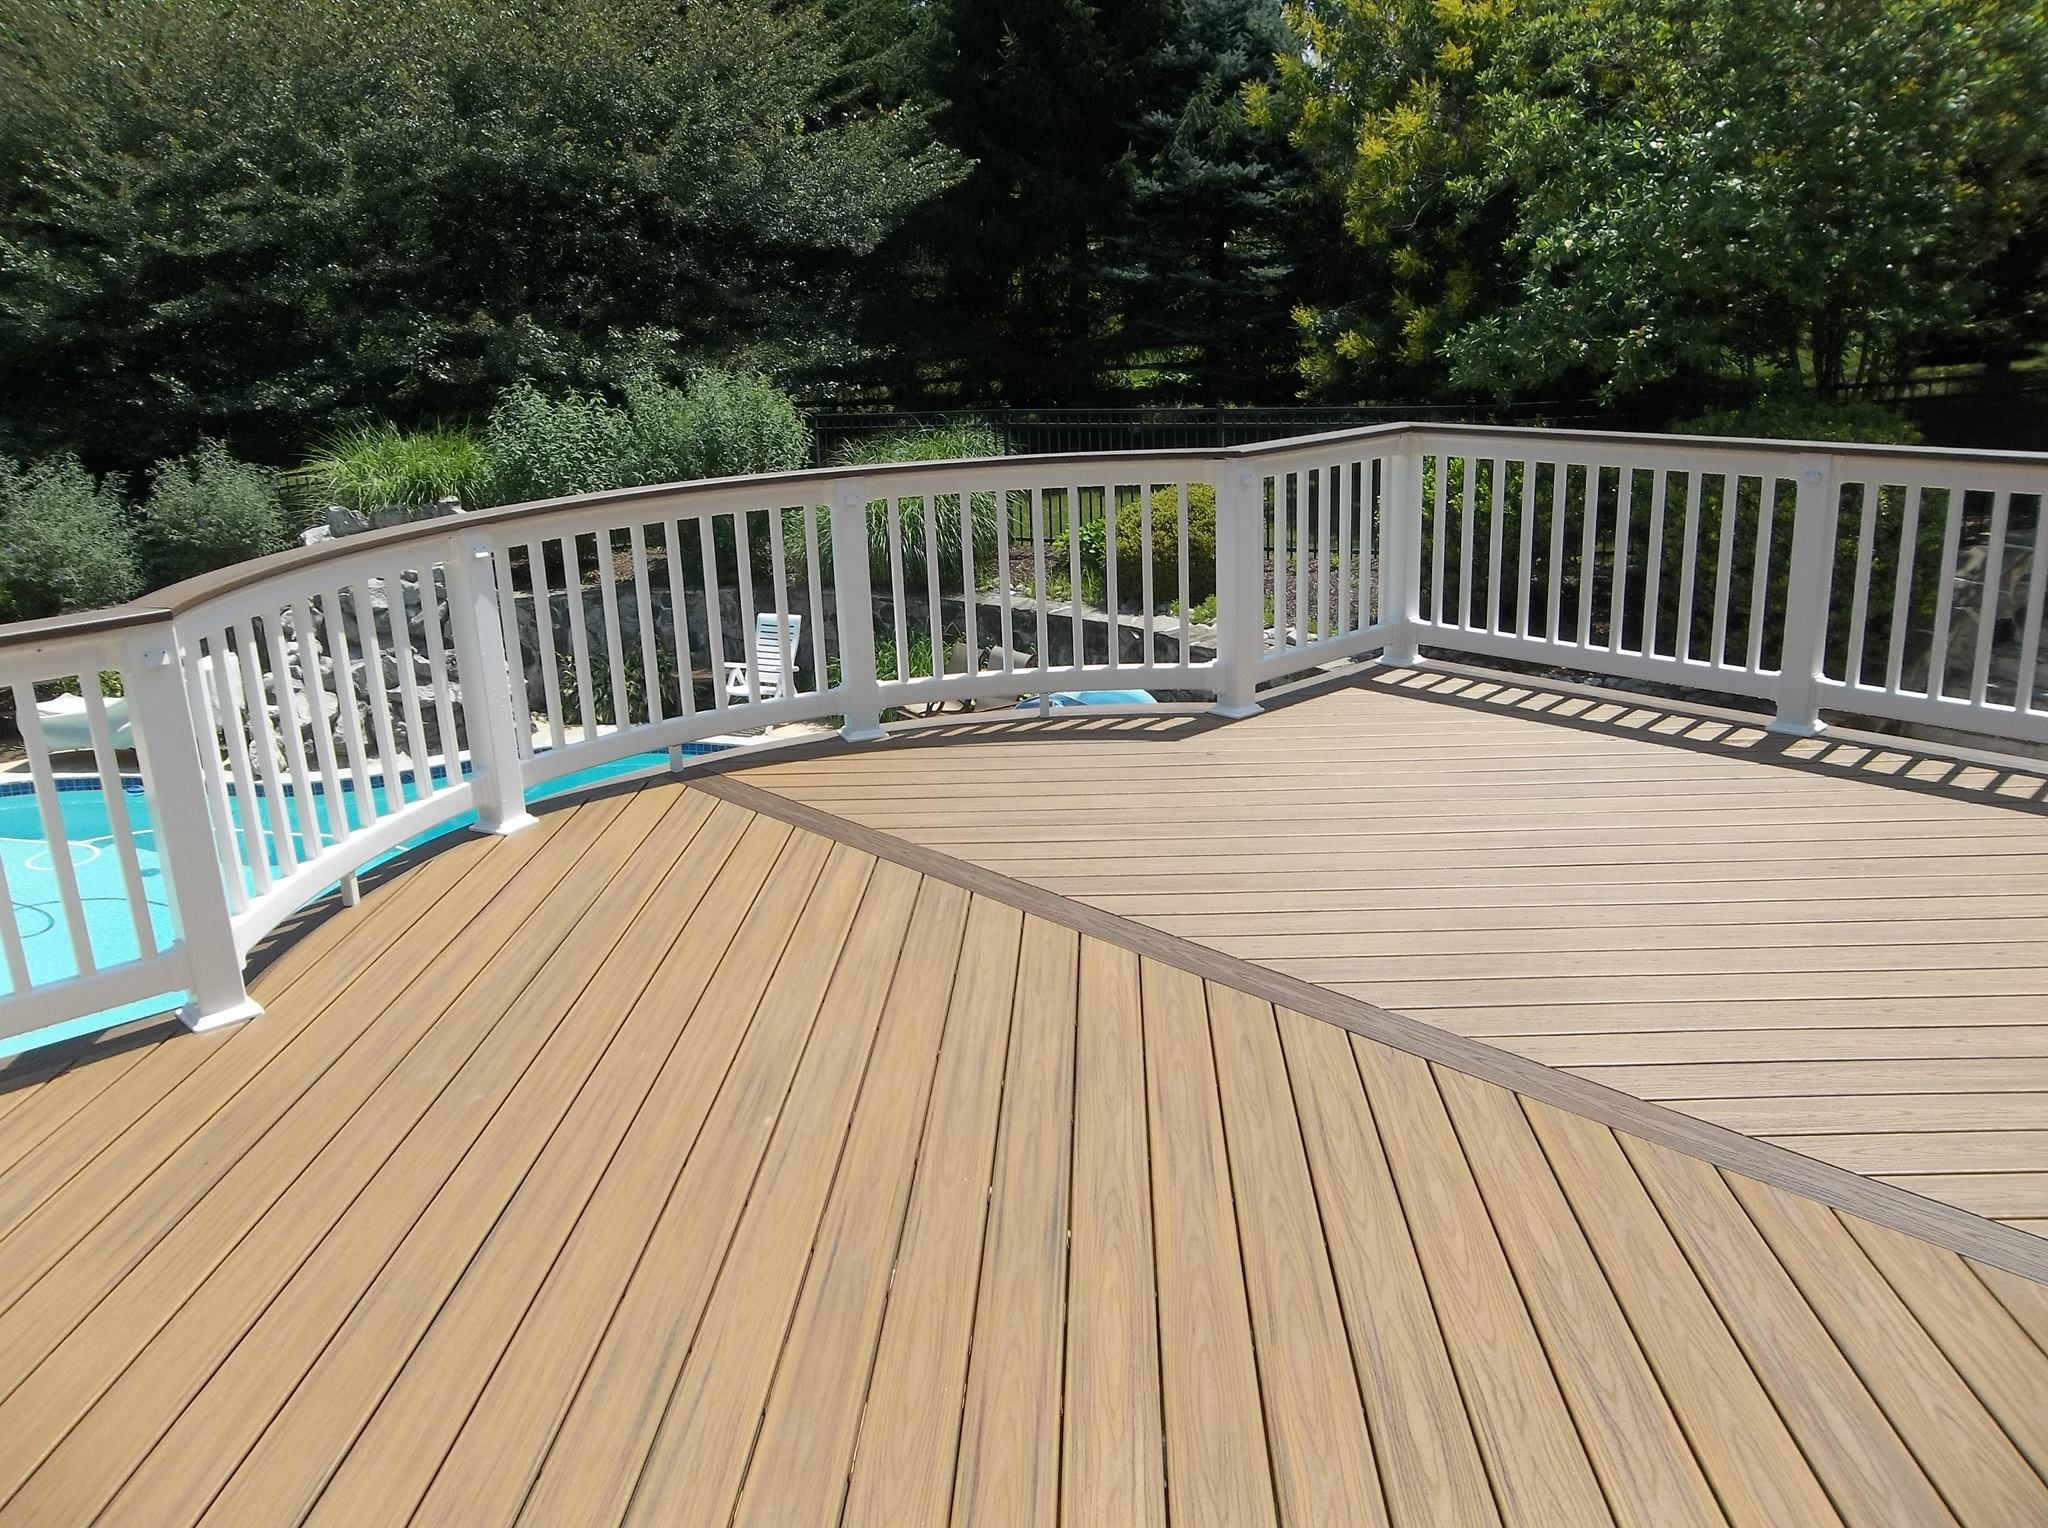 Want A Good Clean Appearance On Your Deck Hidden Fasteners Are The Way To Go Not Only Does It Make The Deck Look Sl Outdoor Living Deck Building A Deck Deck